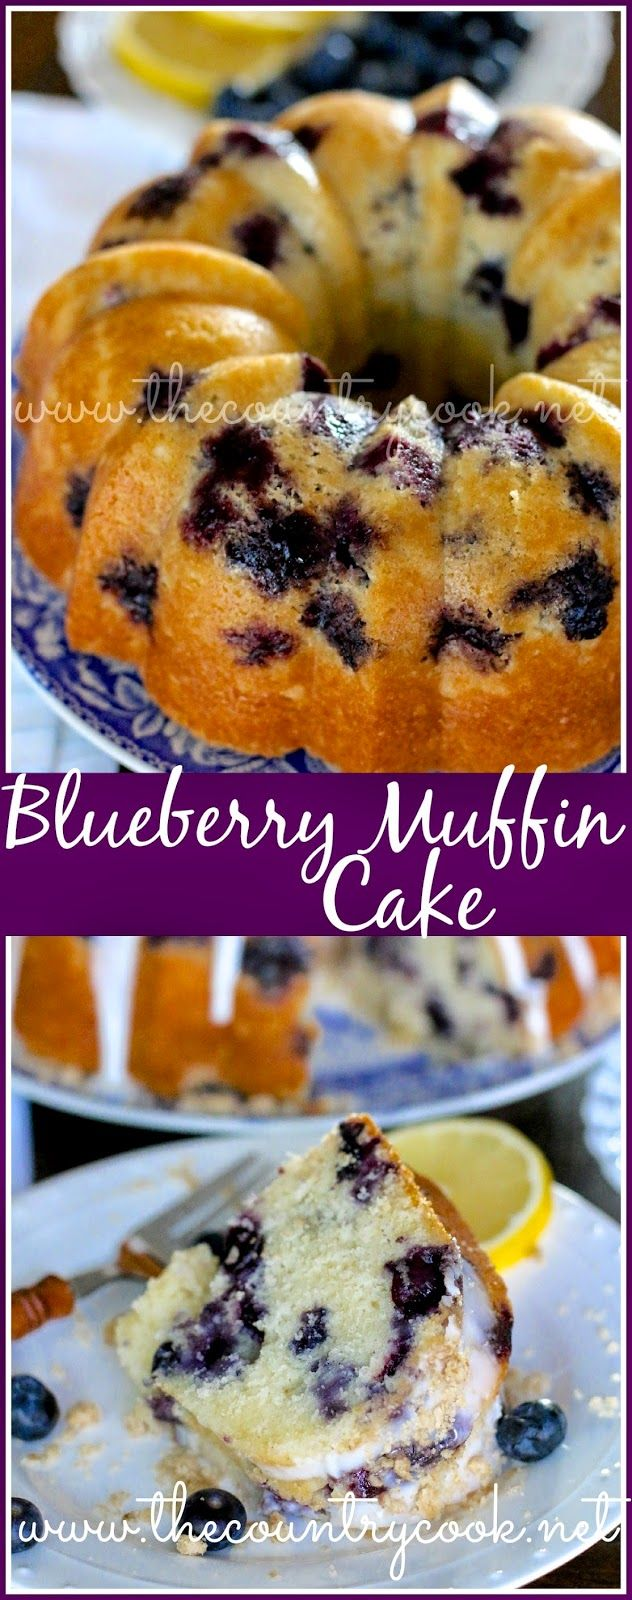 The Country Cook: Blueberry Muffin Cake